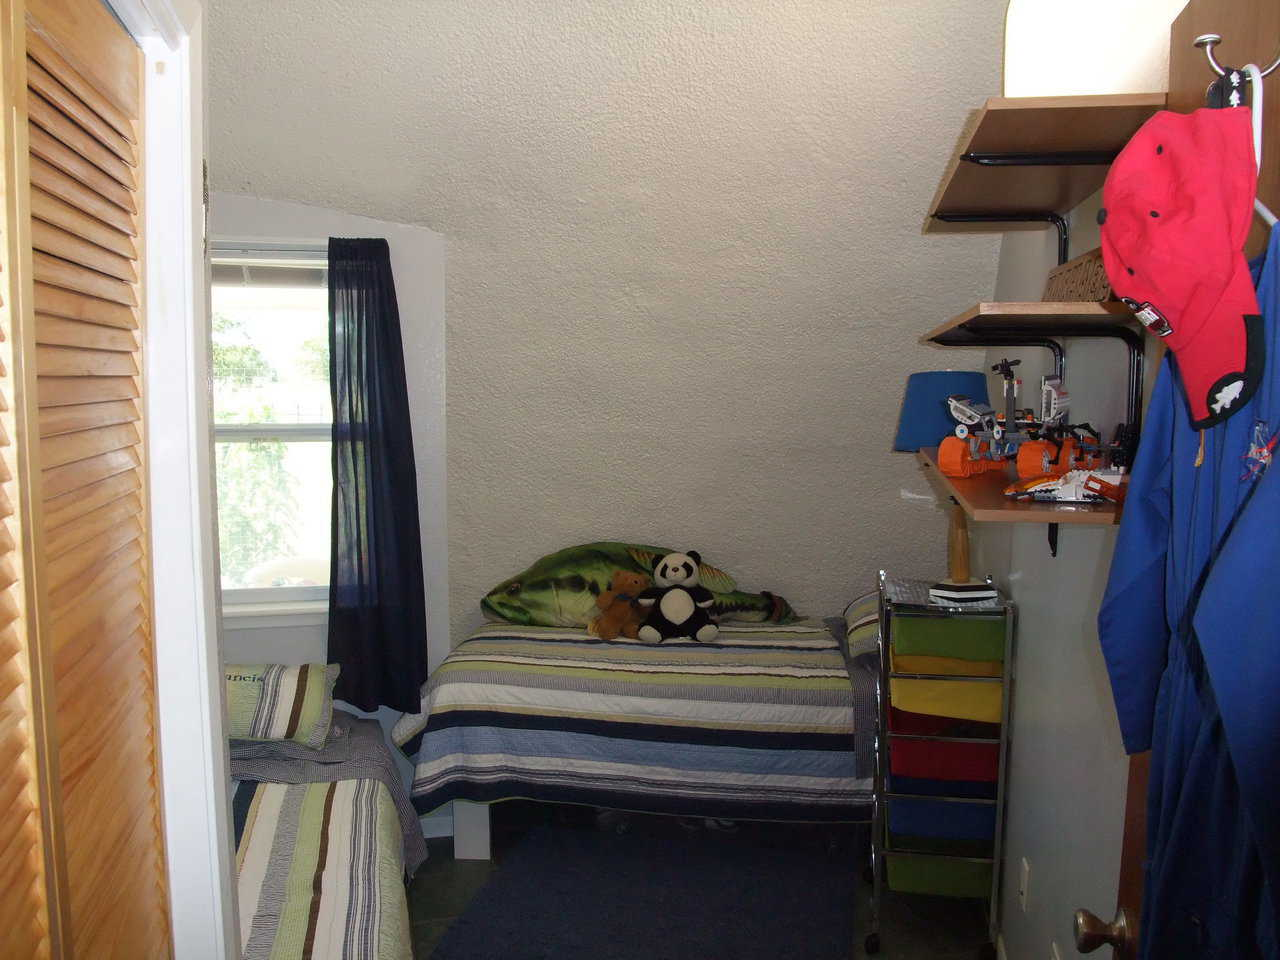 Boys' bedroom — It includes beds and shelves for toys, tools and books.